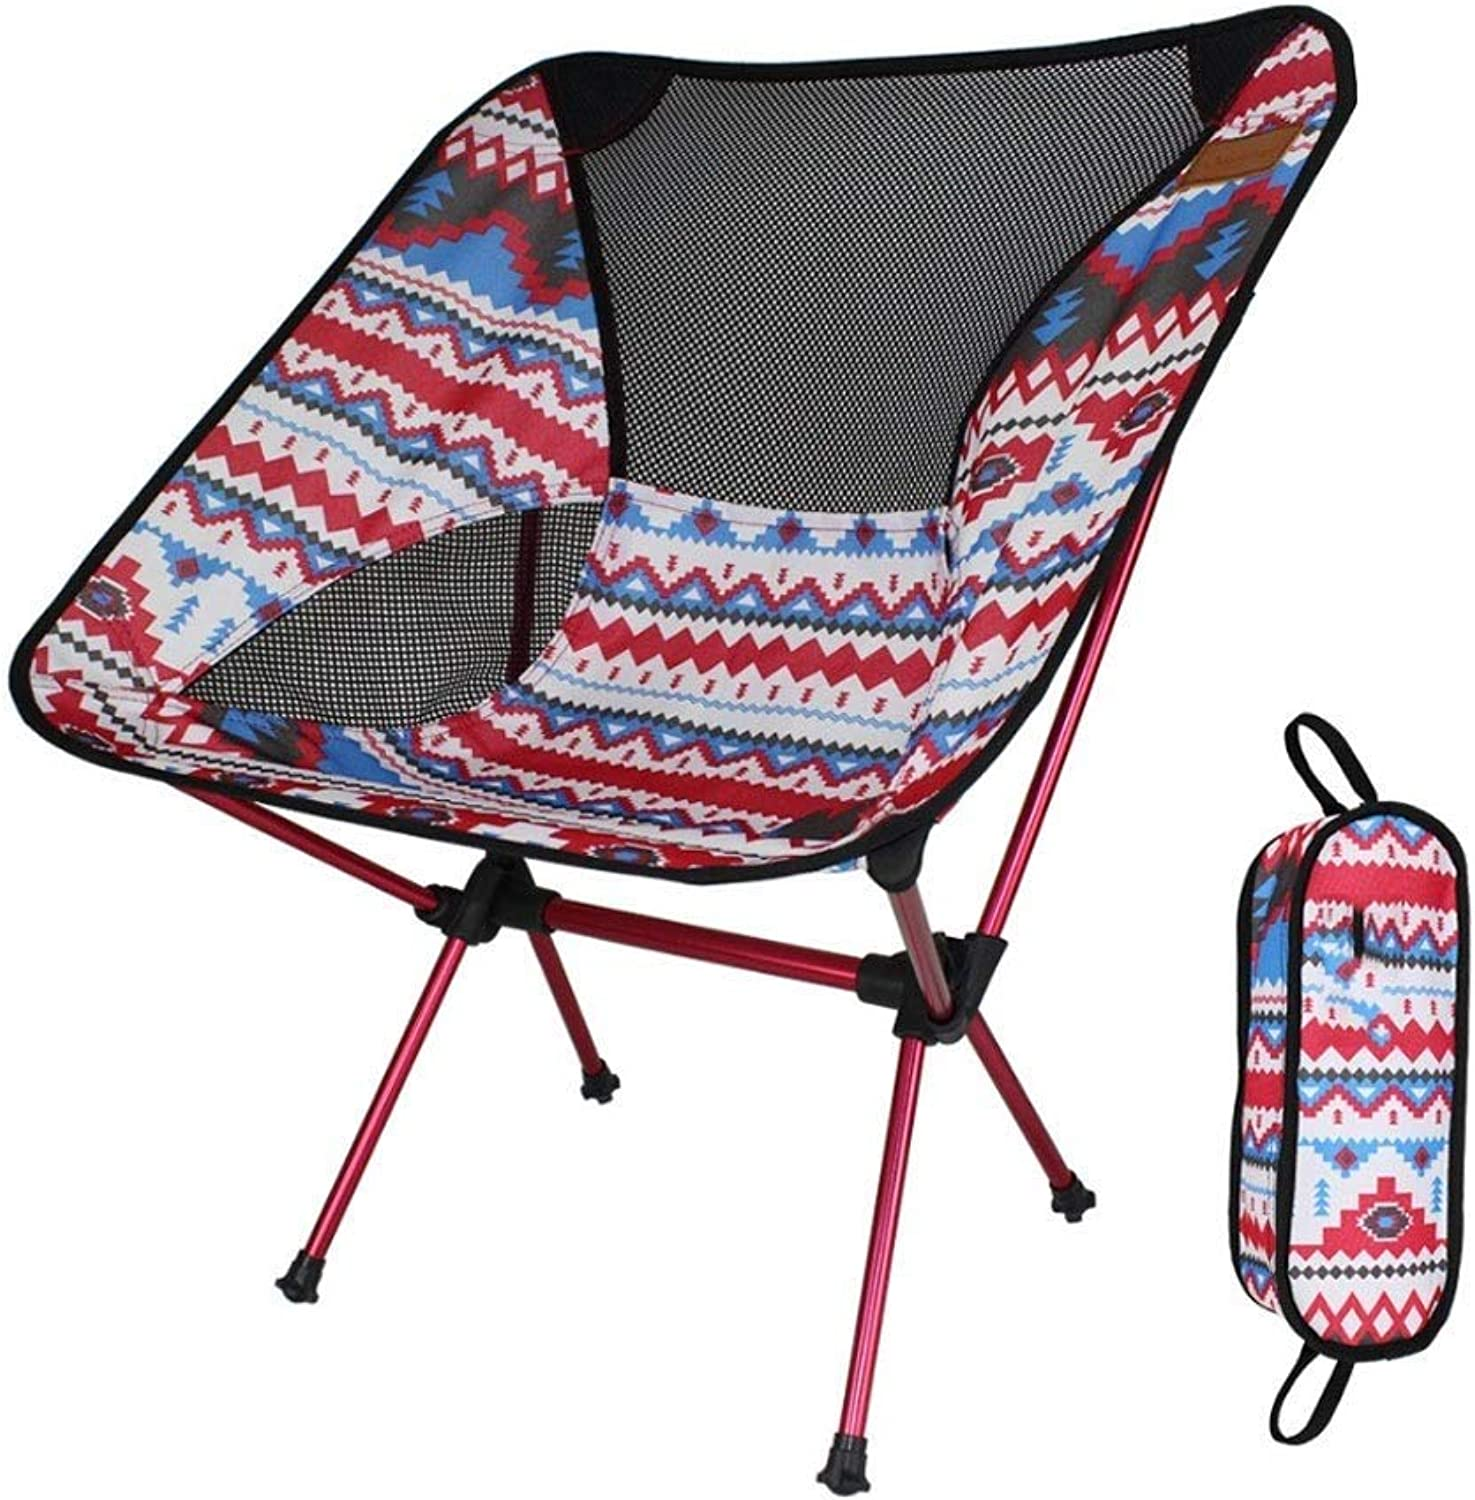 Tao-Miy Portable Lightweight Folding Camping Chair for Backpacking, Hiking, Picnic